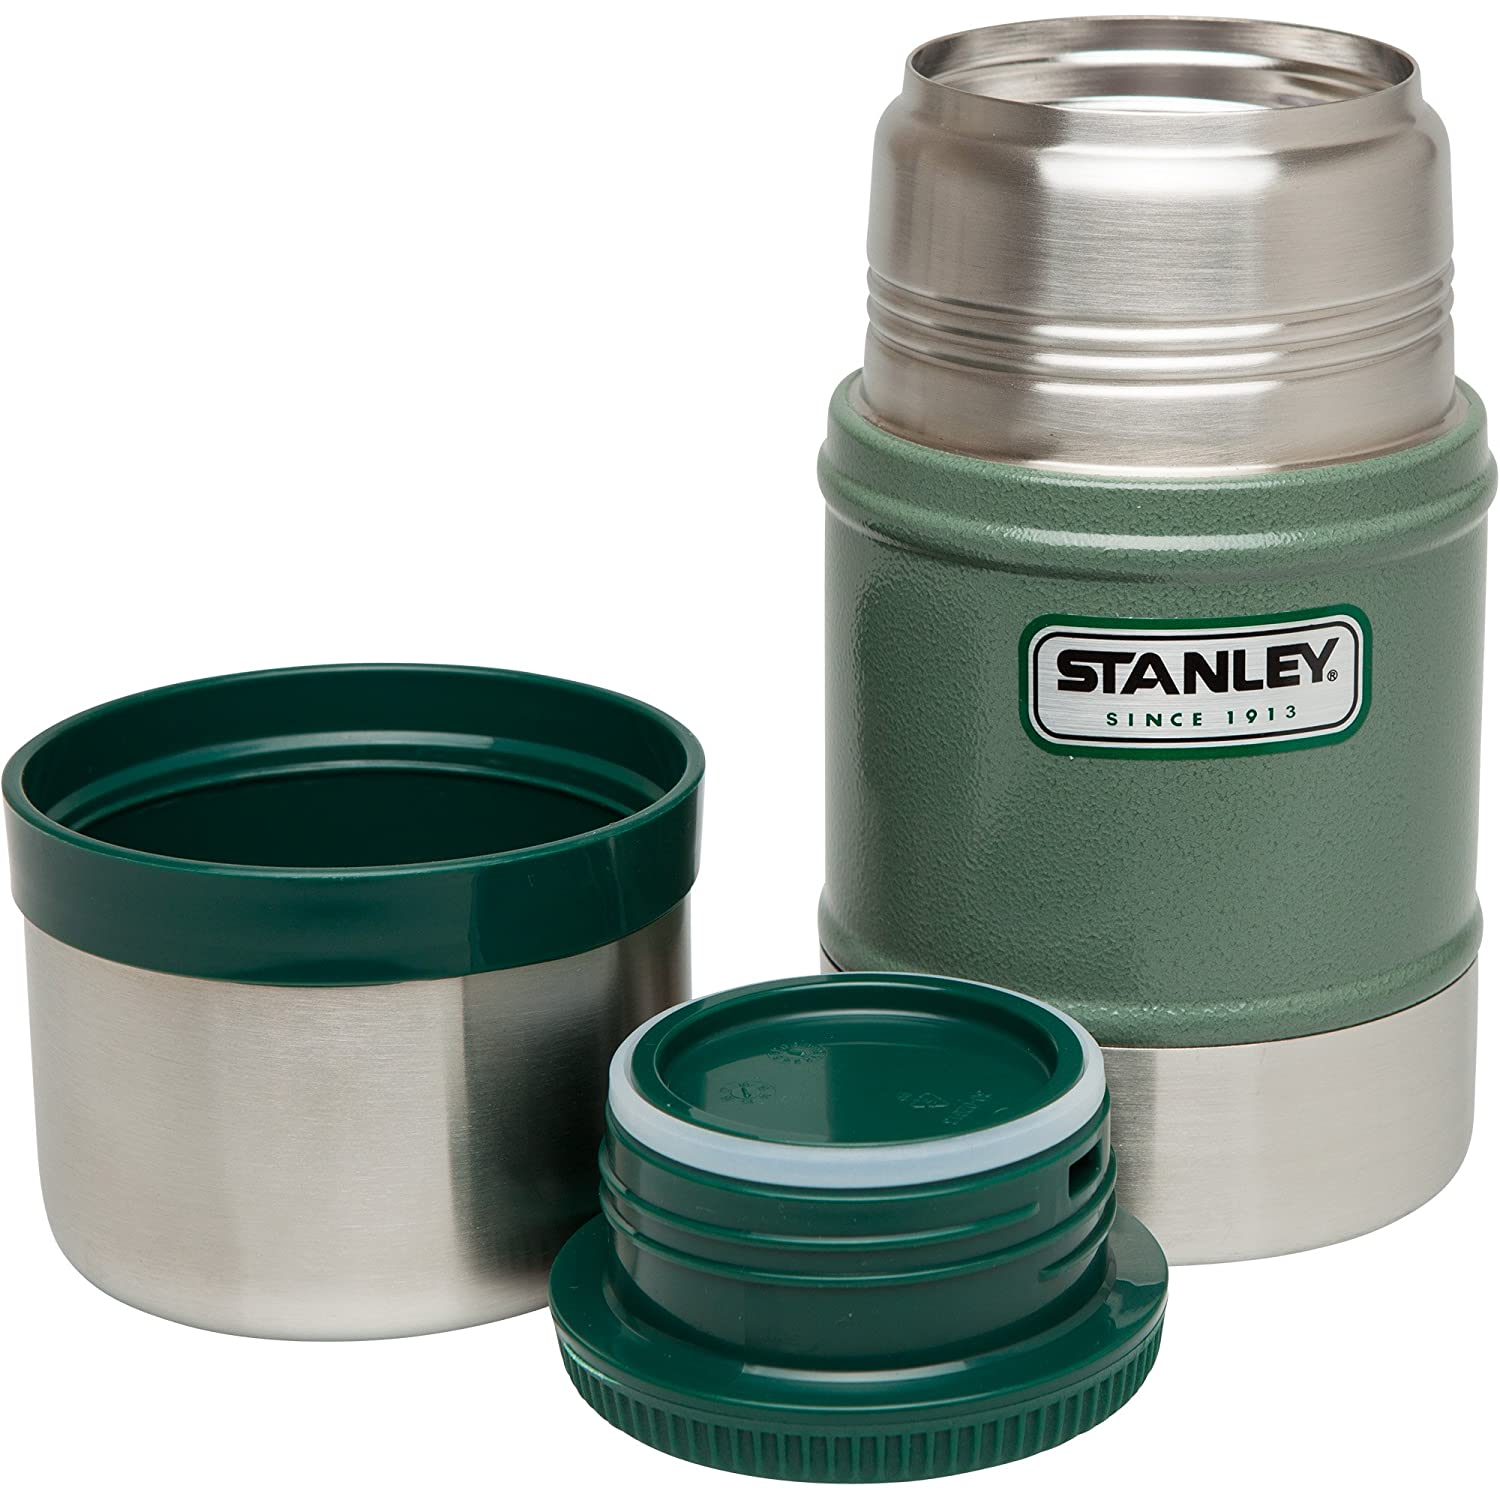 Stanley Legendary Classic Vacuum Food Jar 0 41 Liter Double Wall Vacuum  Insulation 18/8 Stainless Steel Insulated lid Leak Proof Packable  Unbreakable